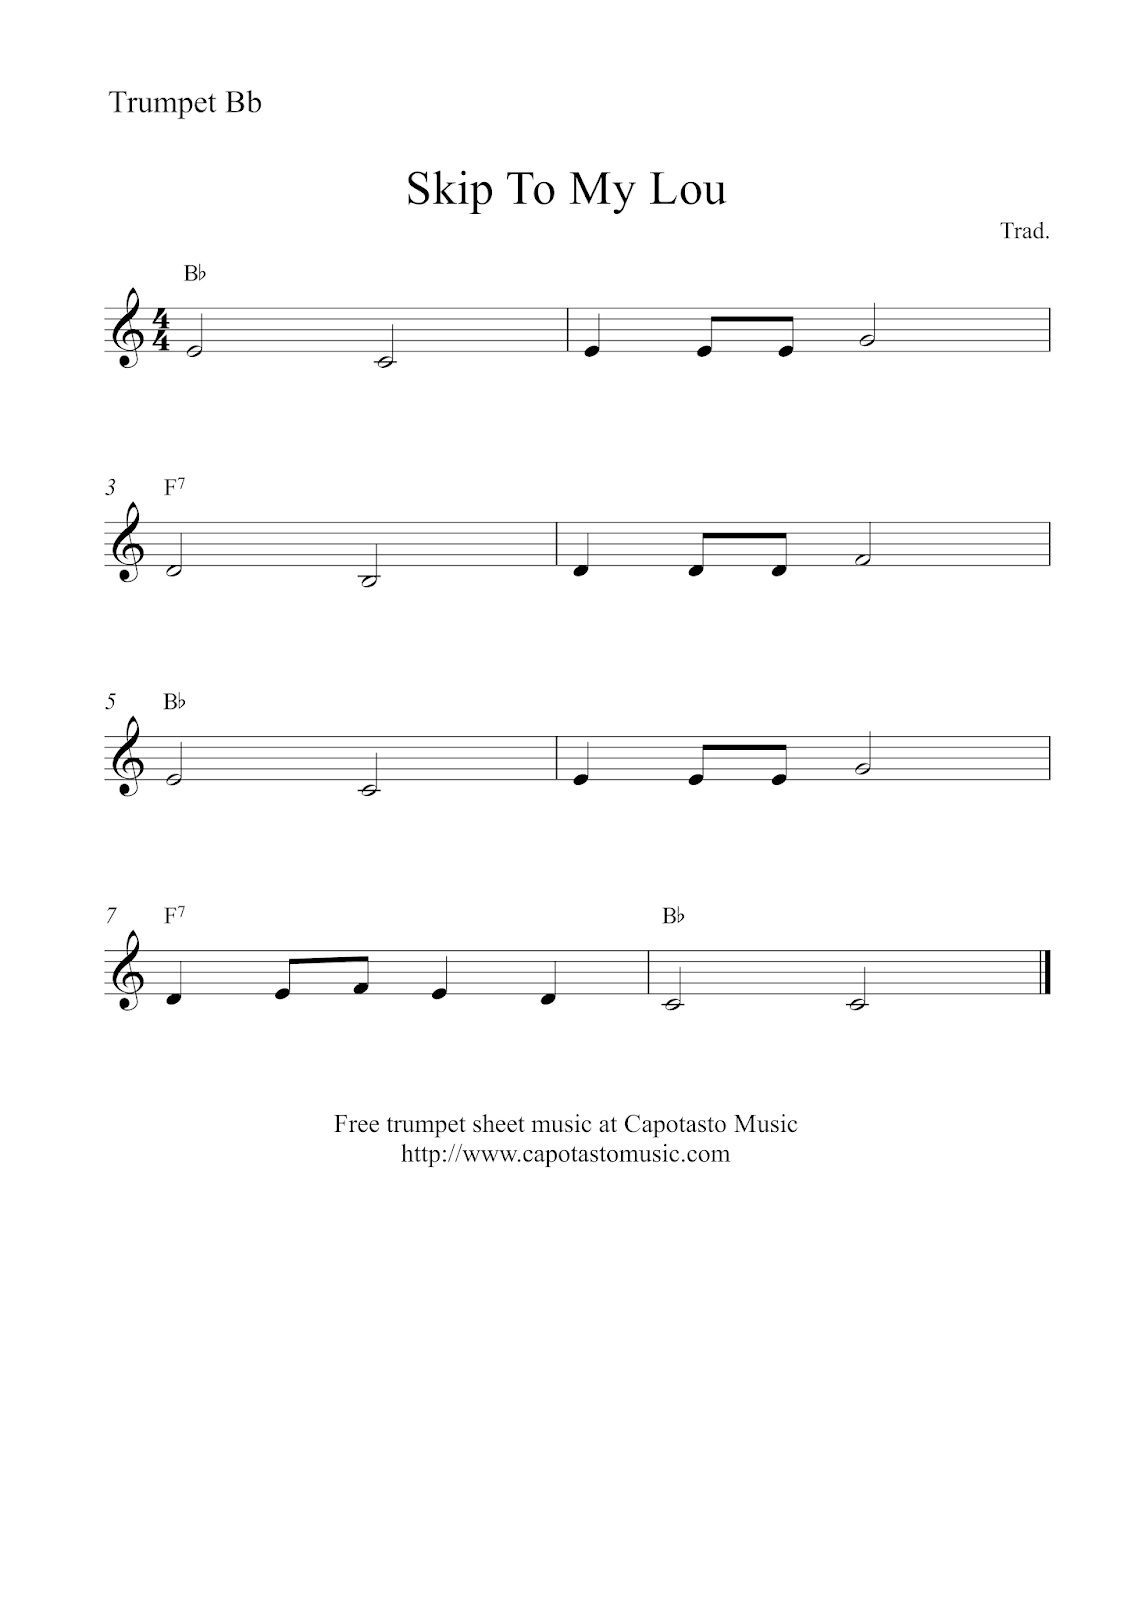 Free Easy Trumpet Sheet Music Skip To My Lou